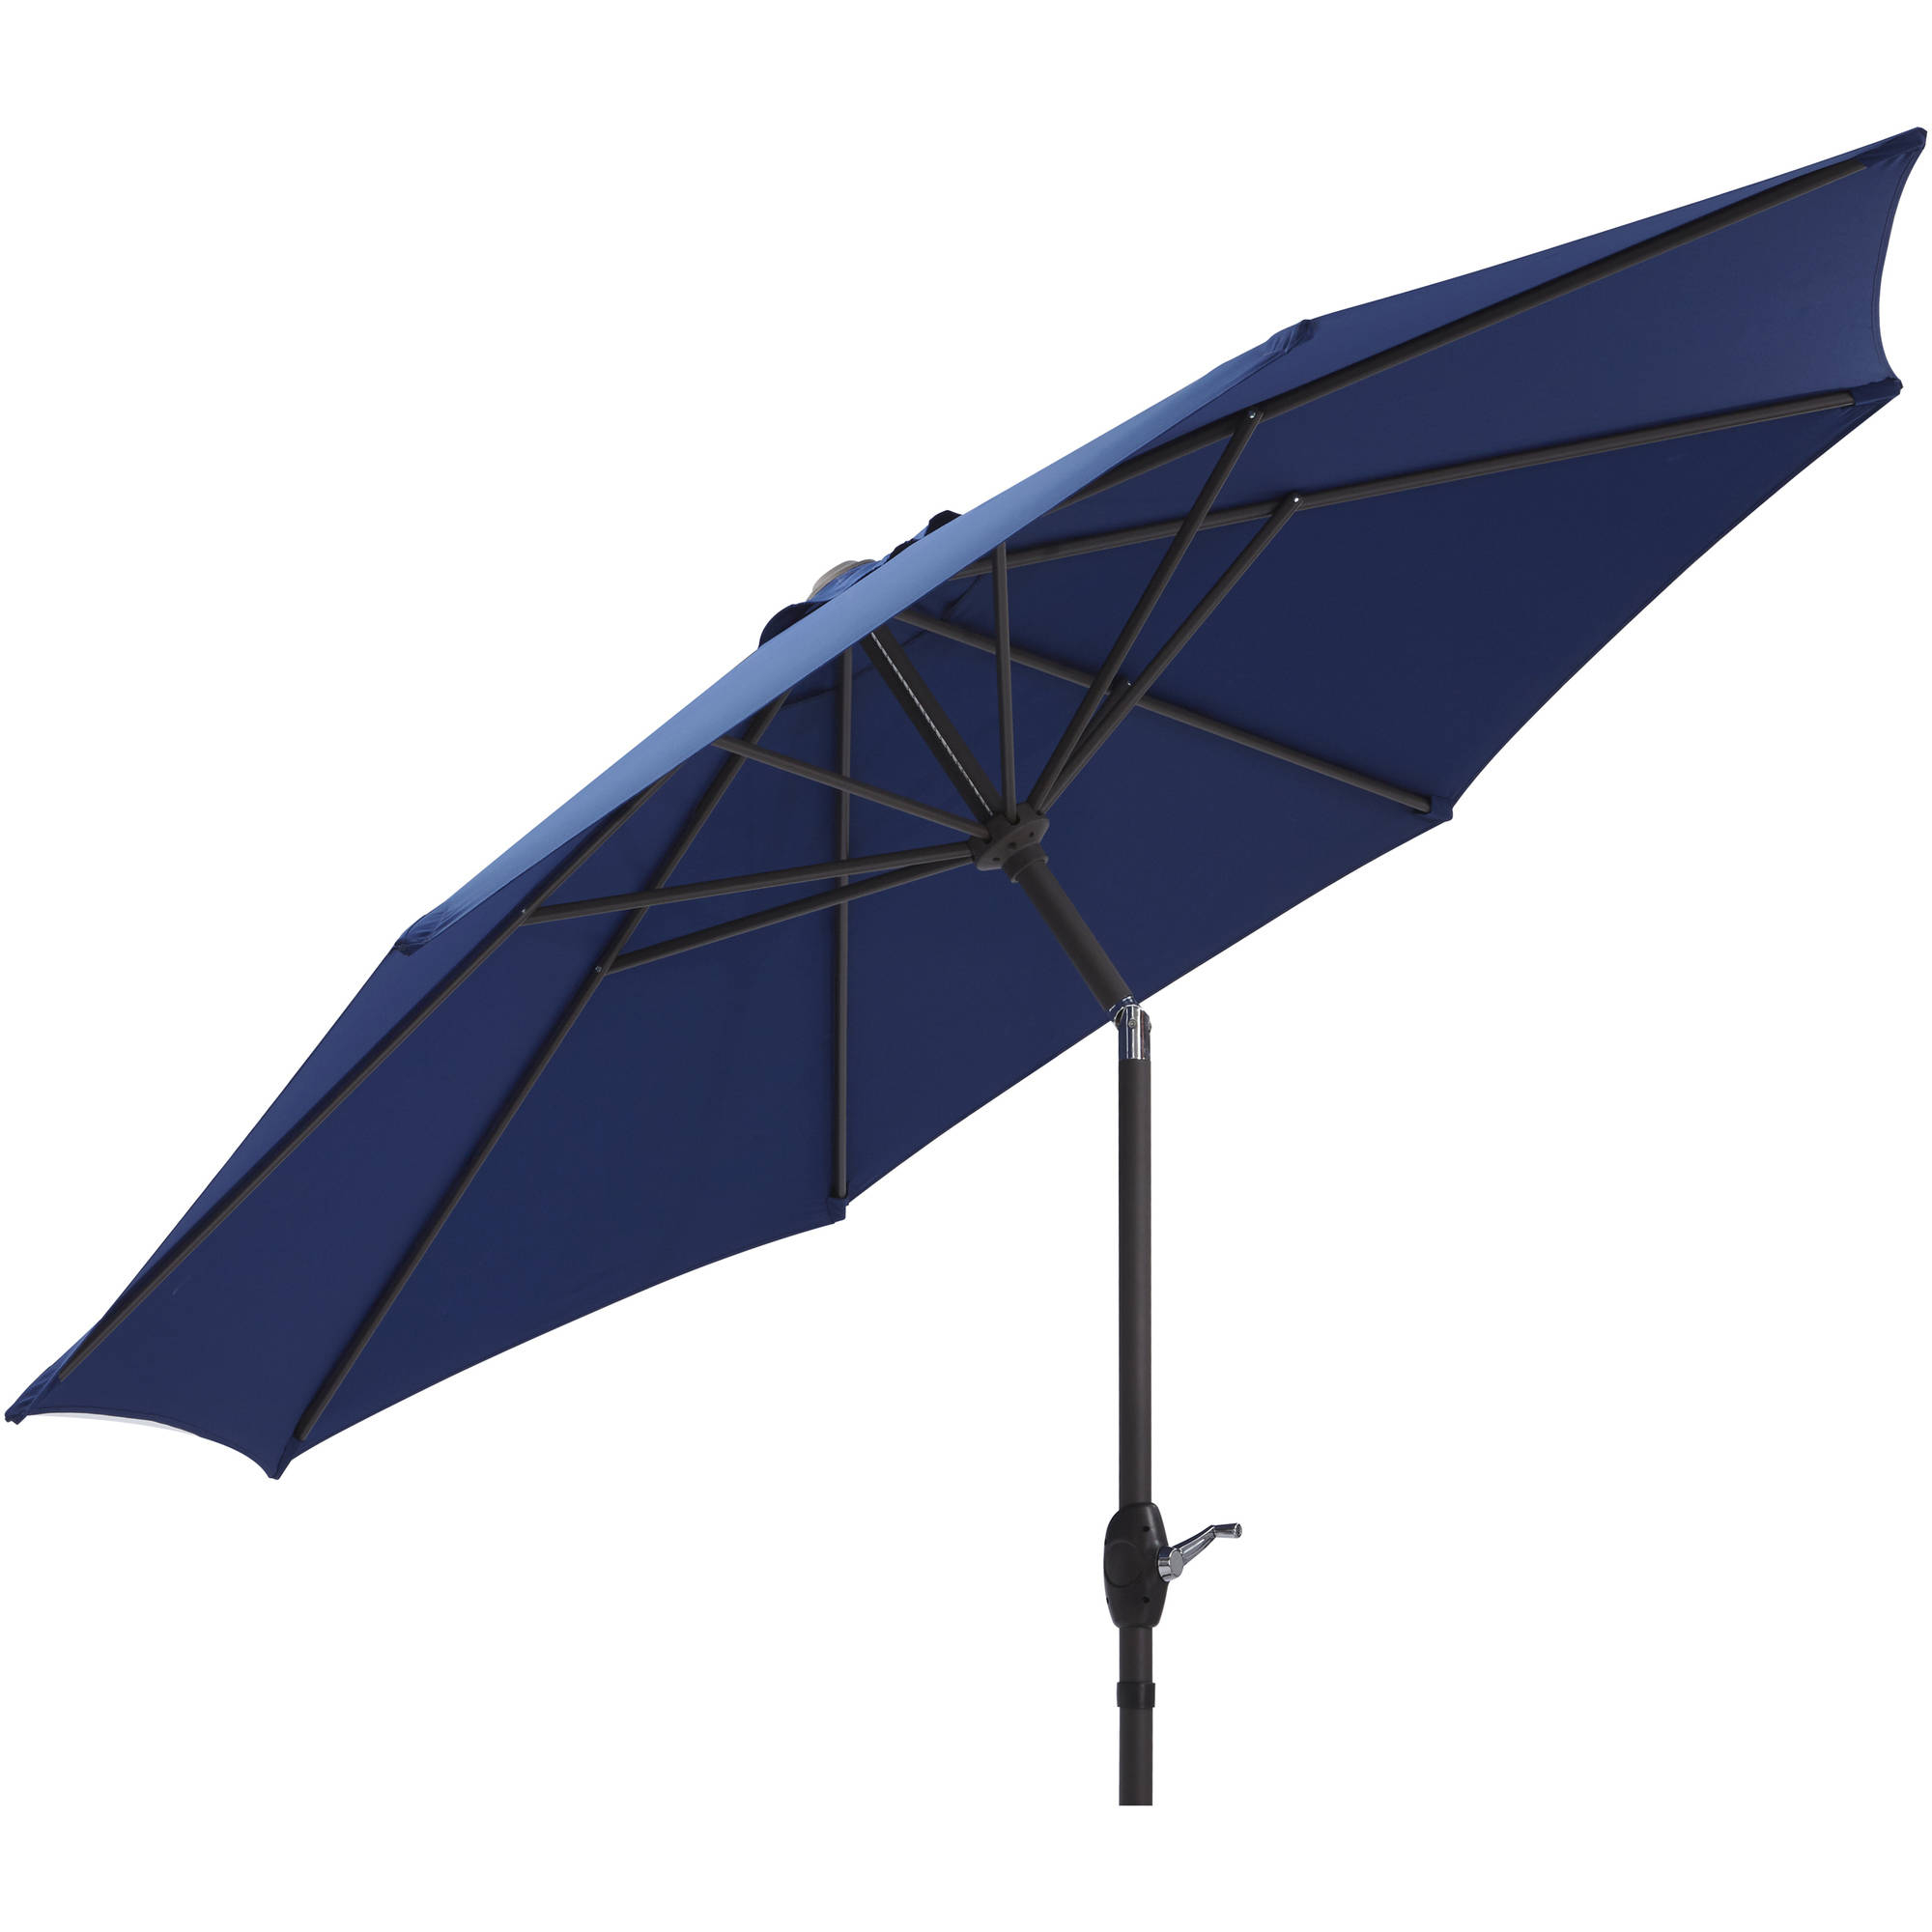 Mainstays 9' Market Umbrella, Navy Blue With Brown Frame For Best And Newest New Haven Market Umbrellas (View 11 of 20)